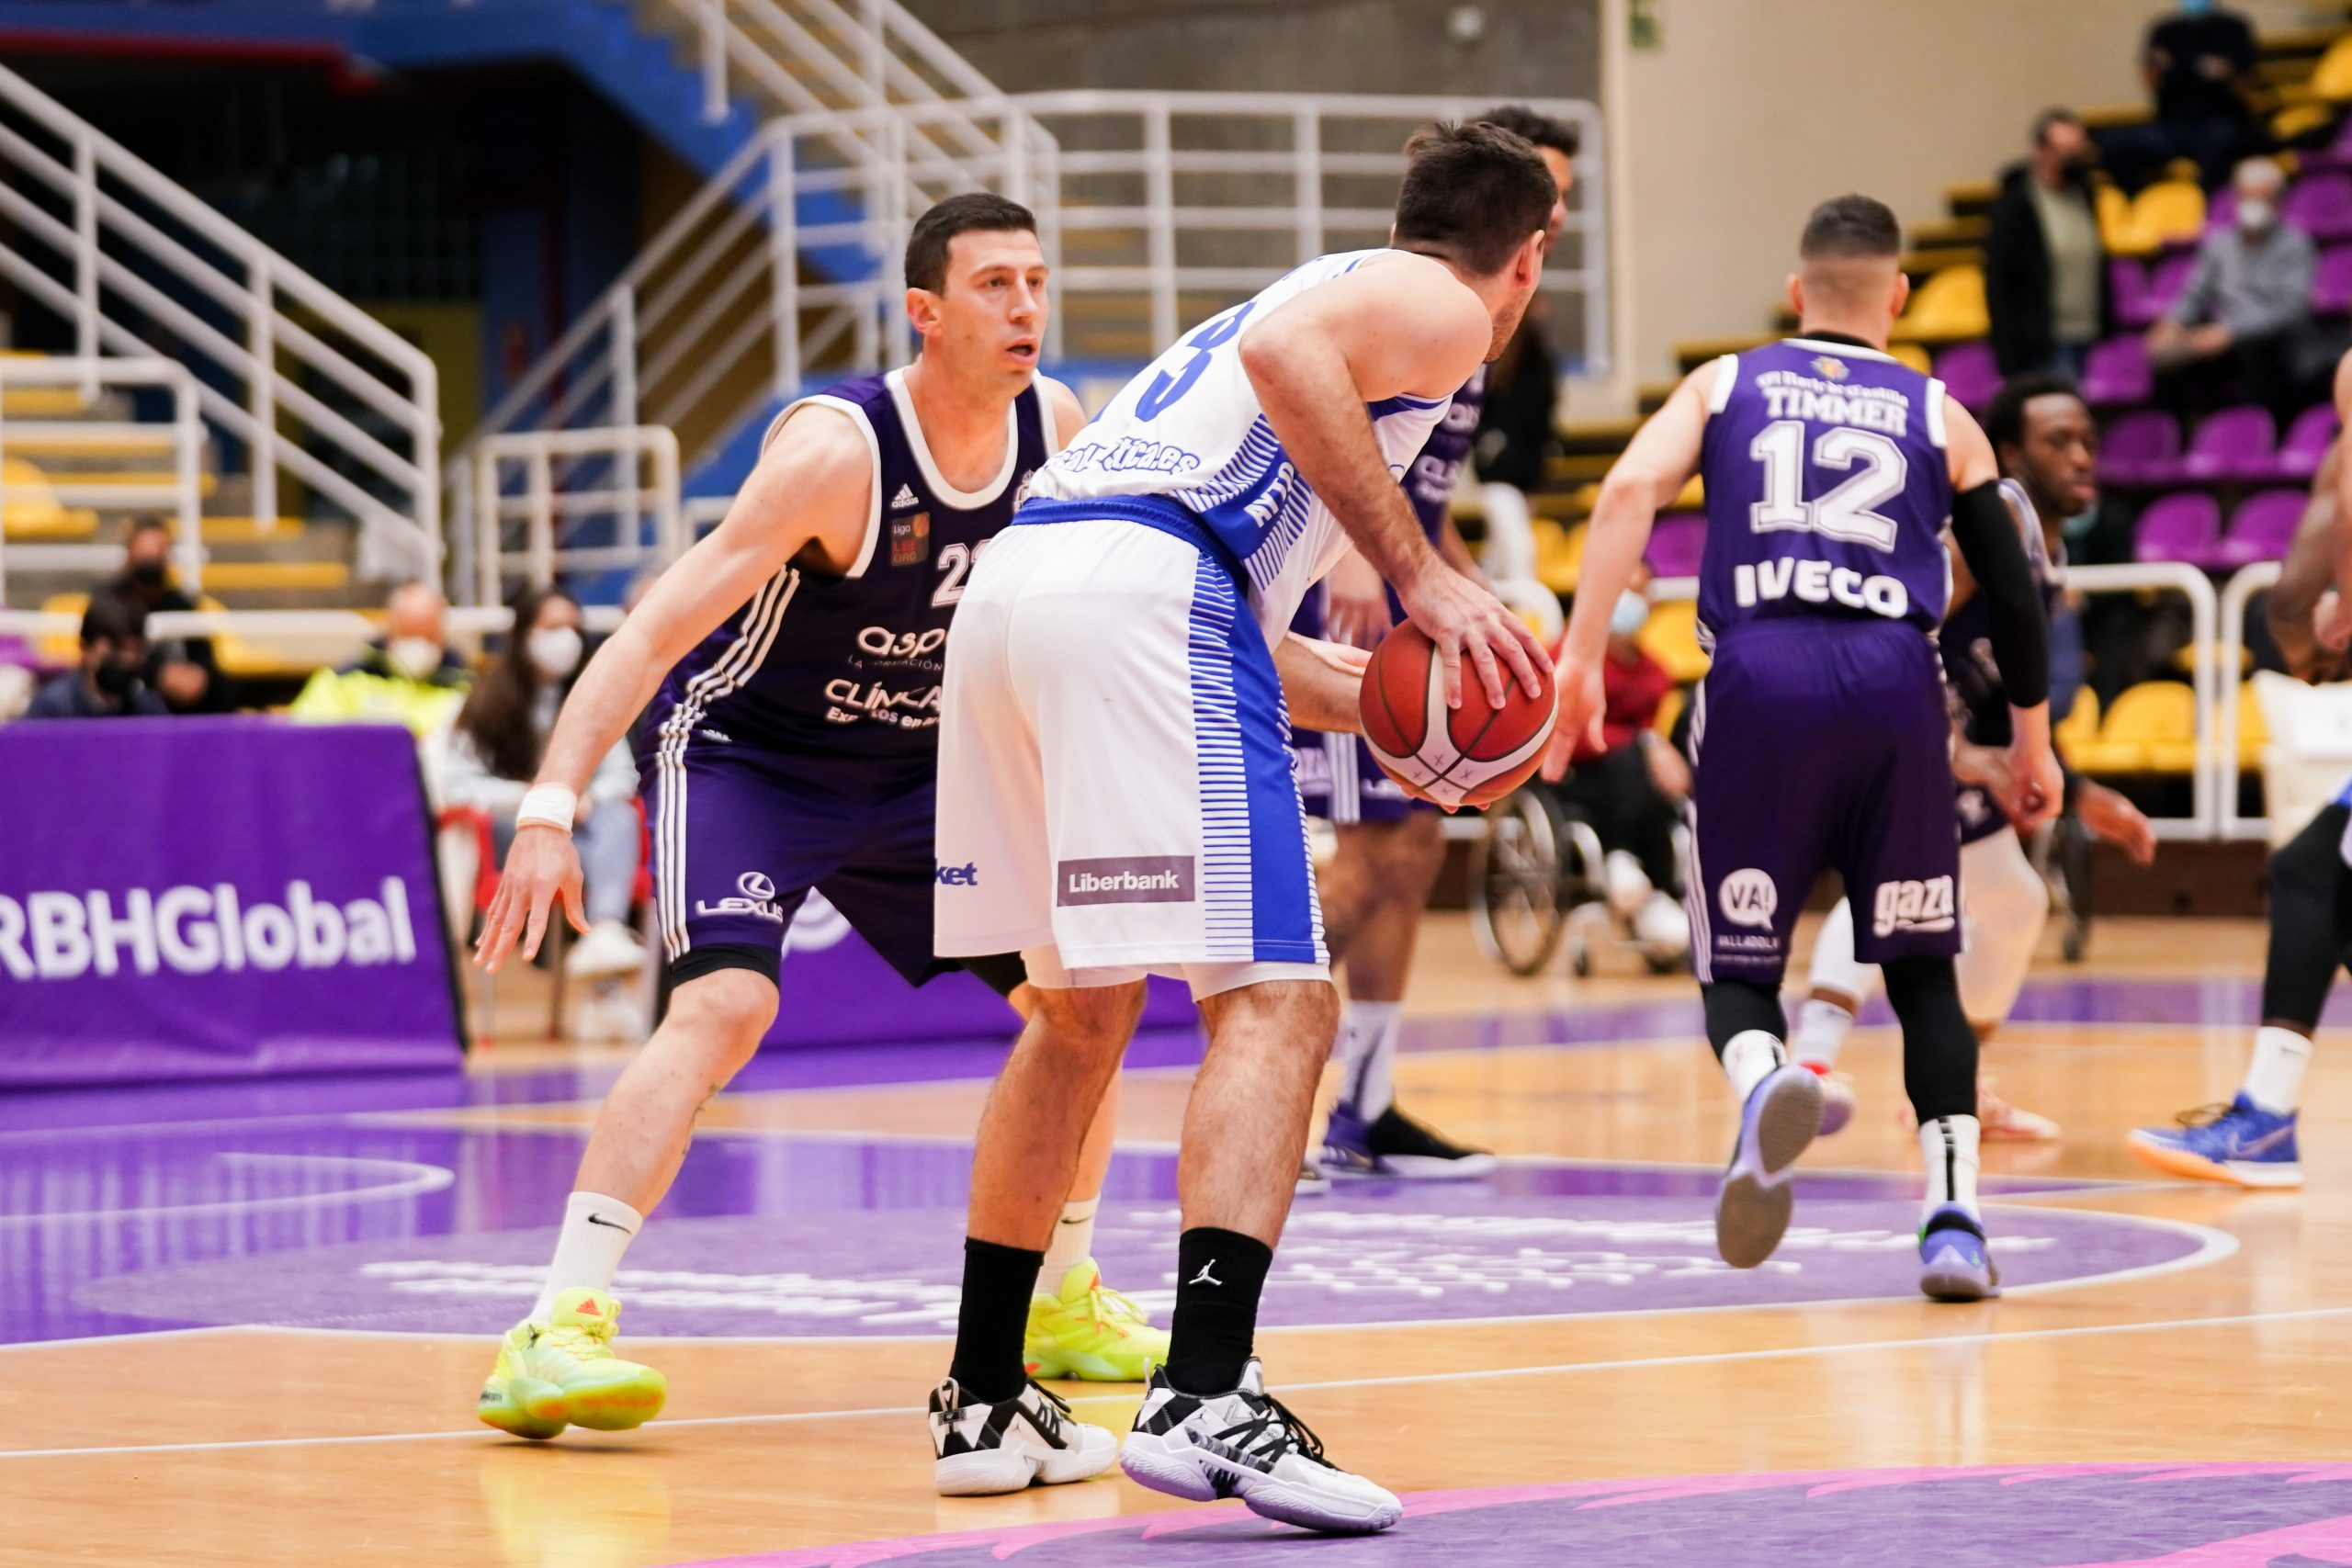 Real Valladolid Baloncesto vs CB Almansa con AFANION